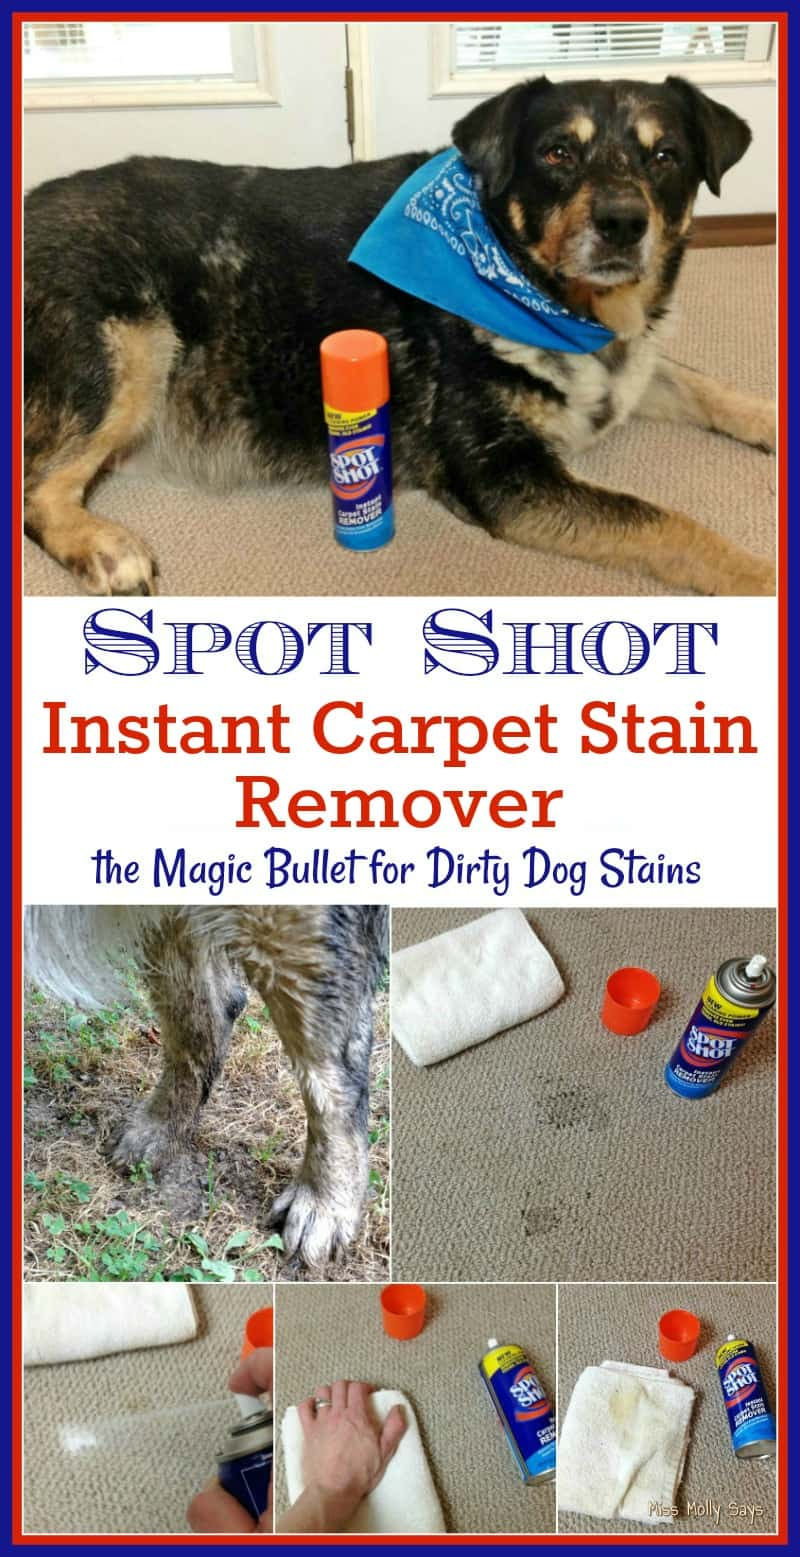 Spot Shot Instant Carpet Stain Remover is the Magic Bullet for Dirty Dog Stains #SpotShot